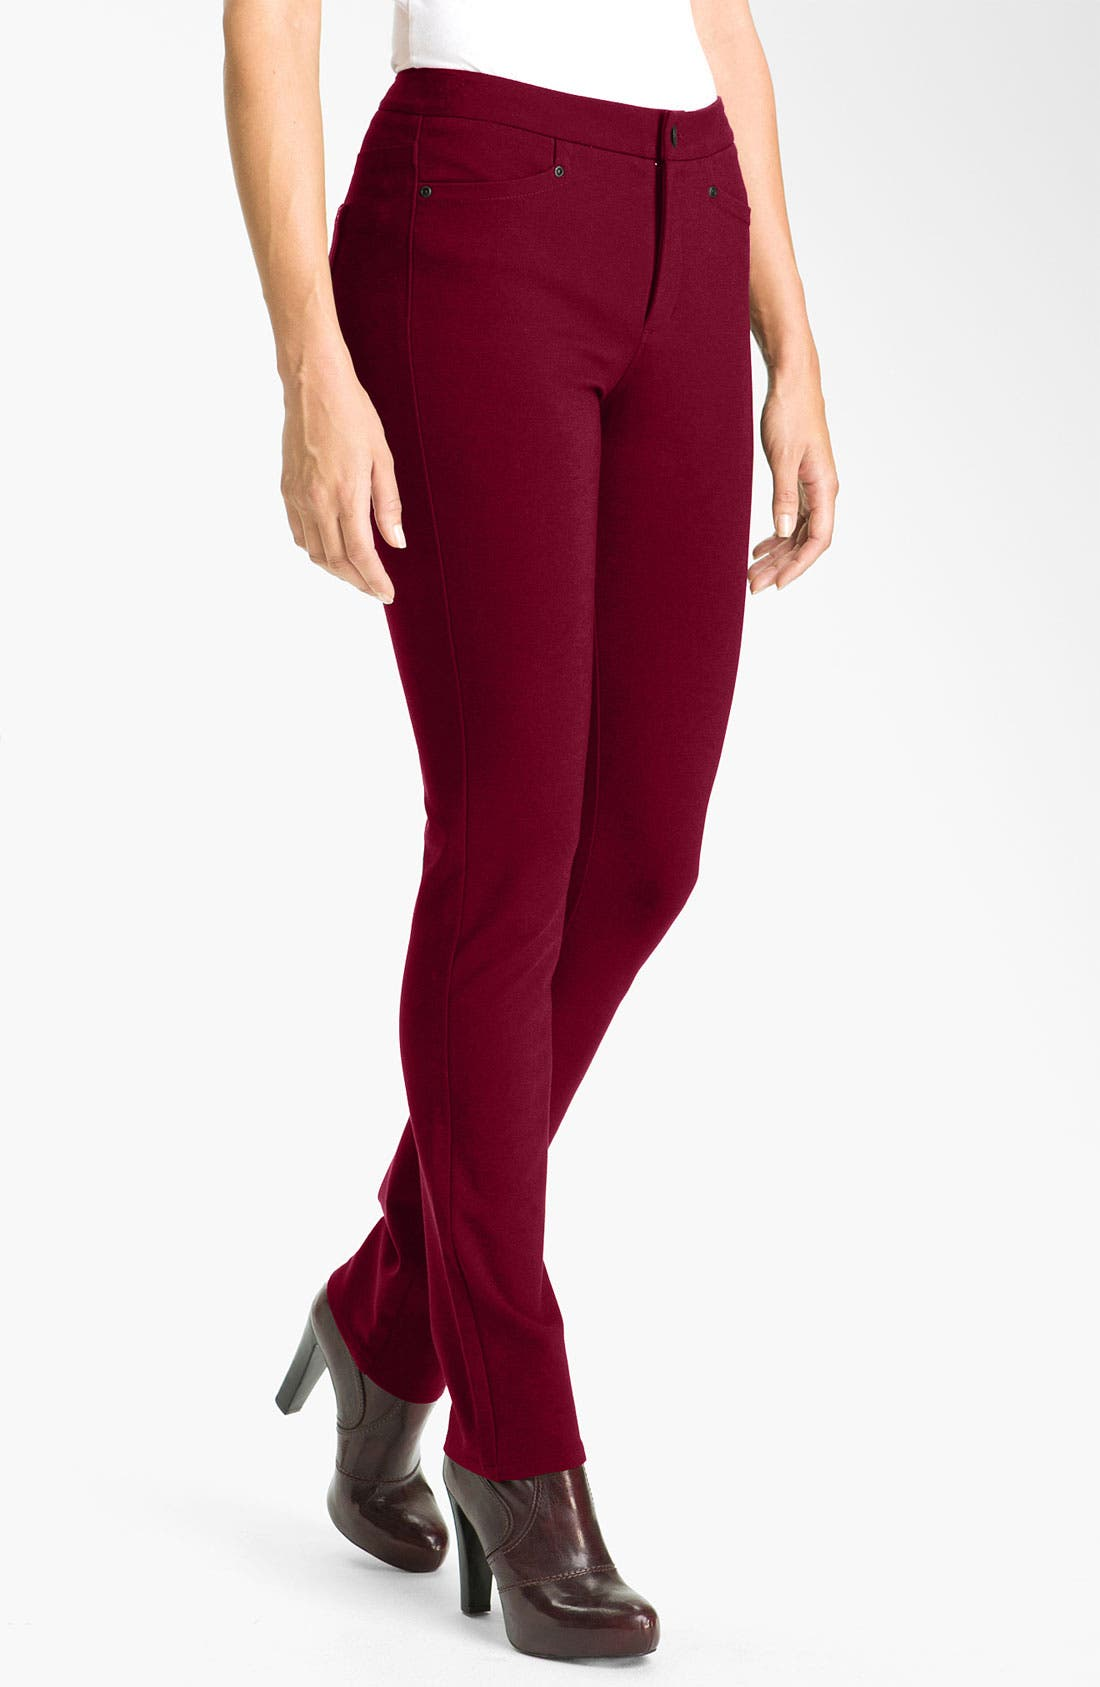 Main Image - NYDJ 'Samantha' Stretch Ponte Knit Pants